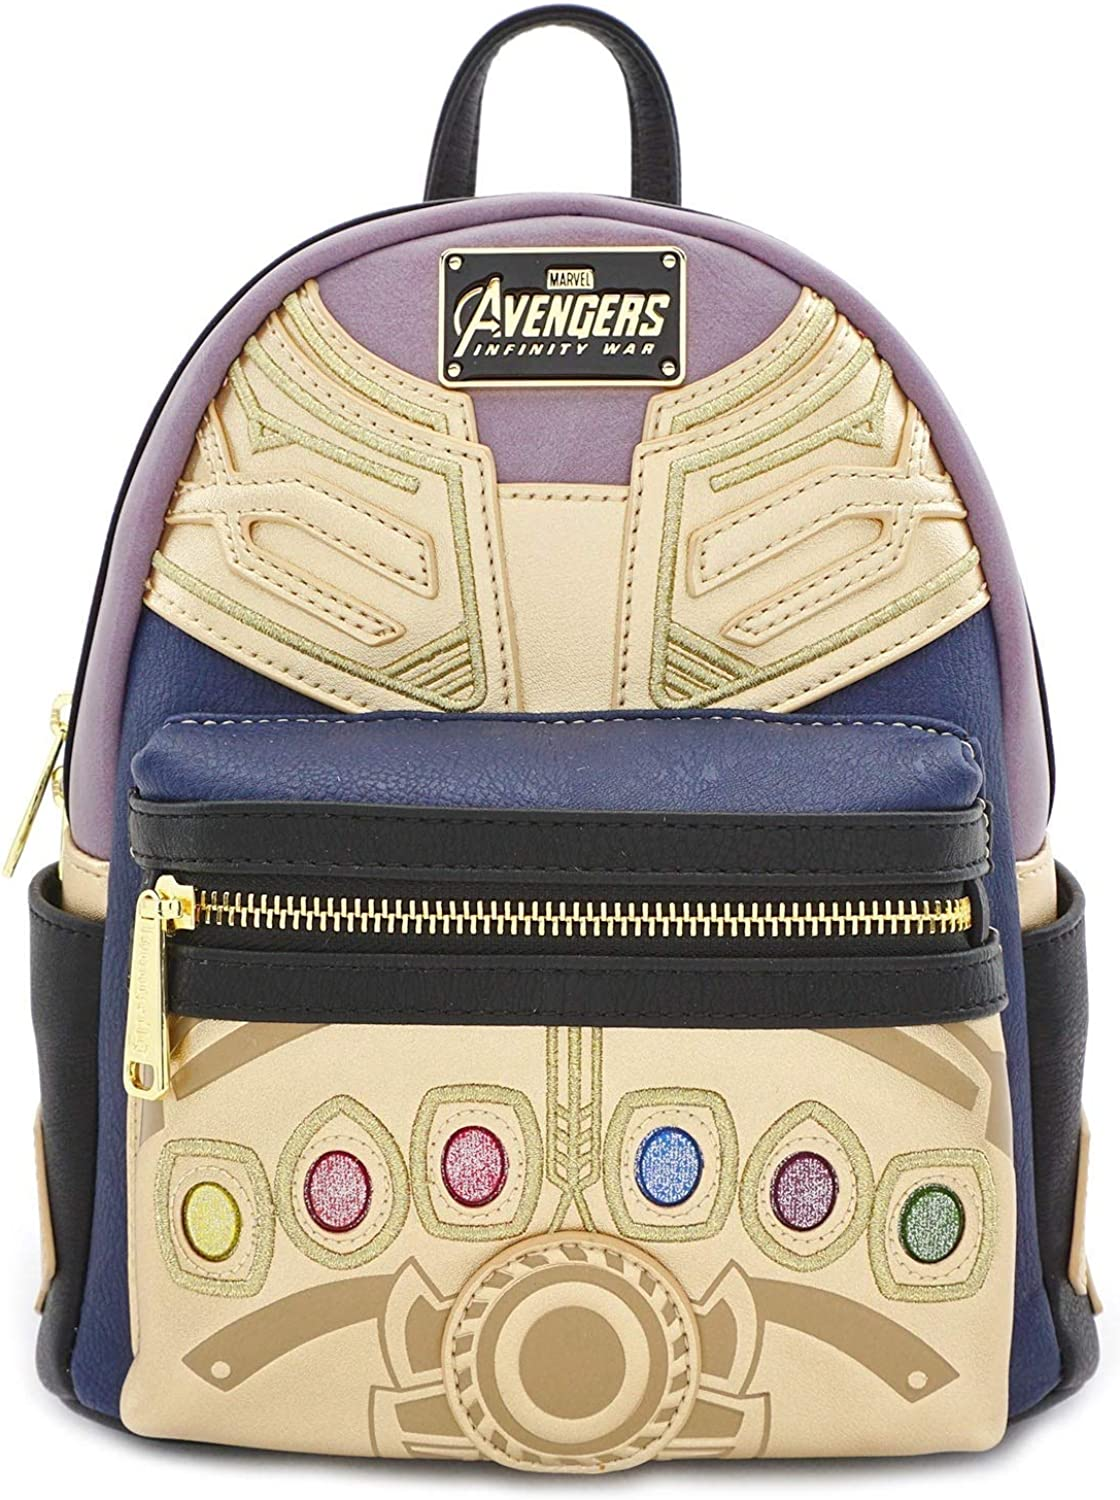 Loungefly x Marvel Avengers Thanos Infinity Stone Mini Backpack